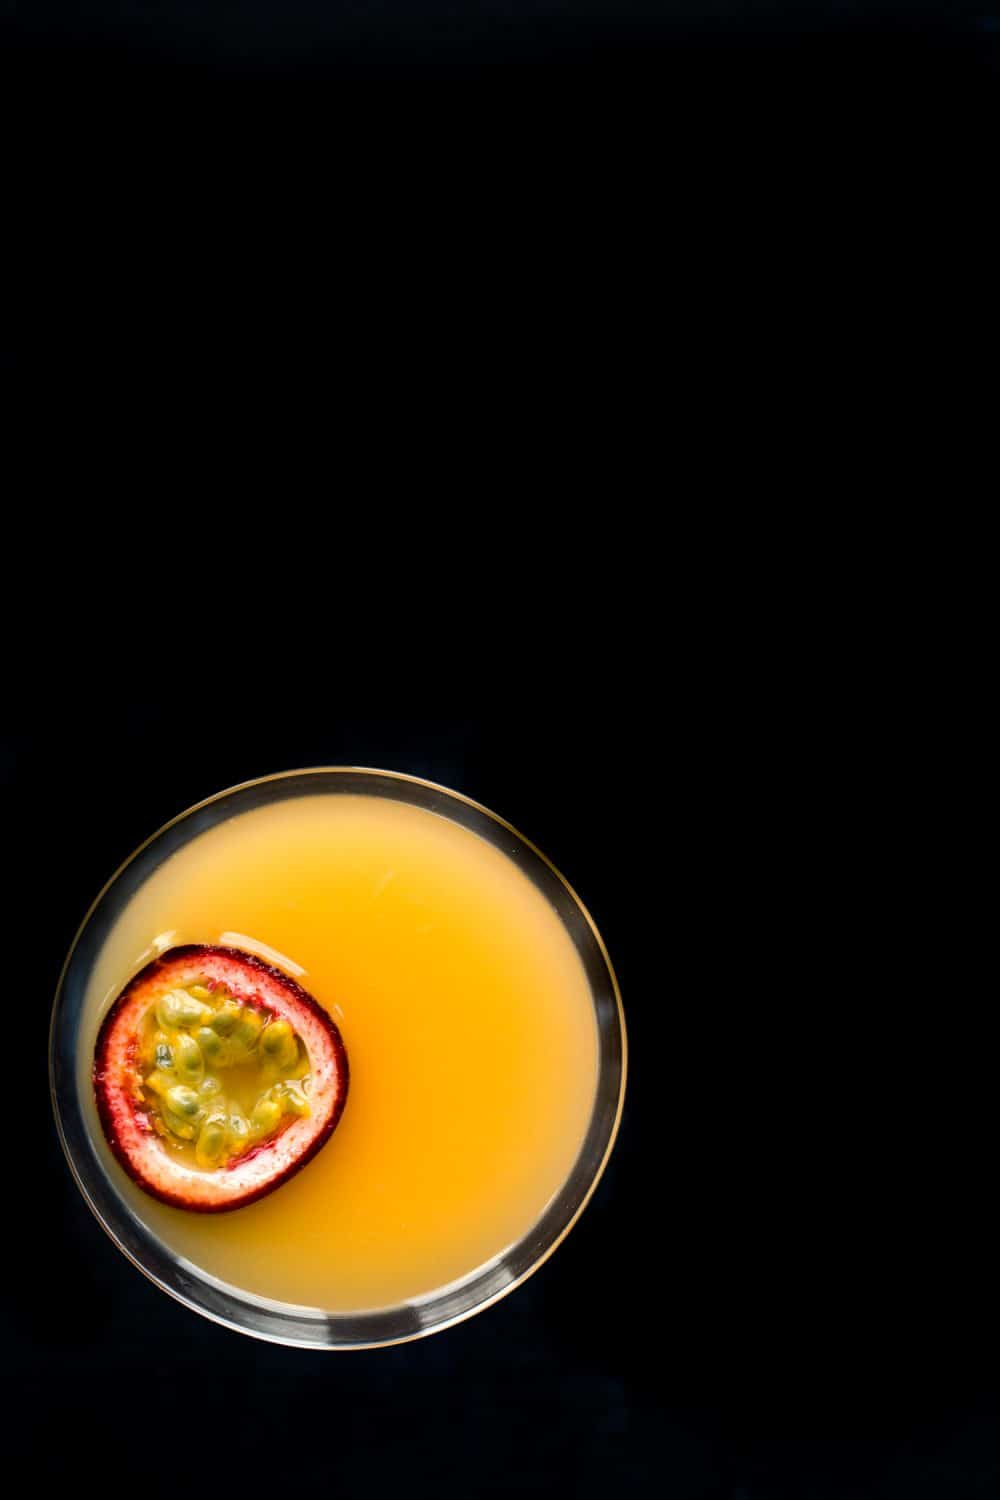 Bird's eye view of a martini glass on a very dark background. The drink inside the glass is orange and there is a slice of passion fruit on top of the drink.